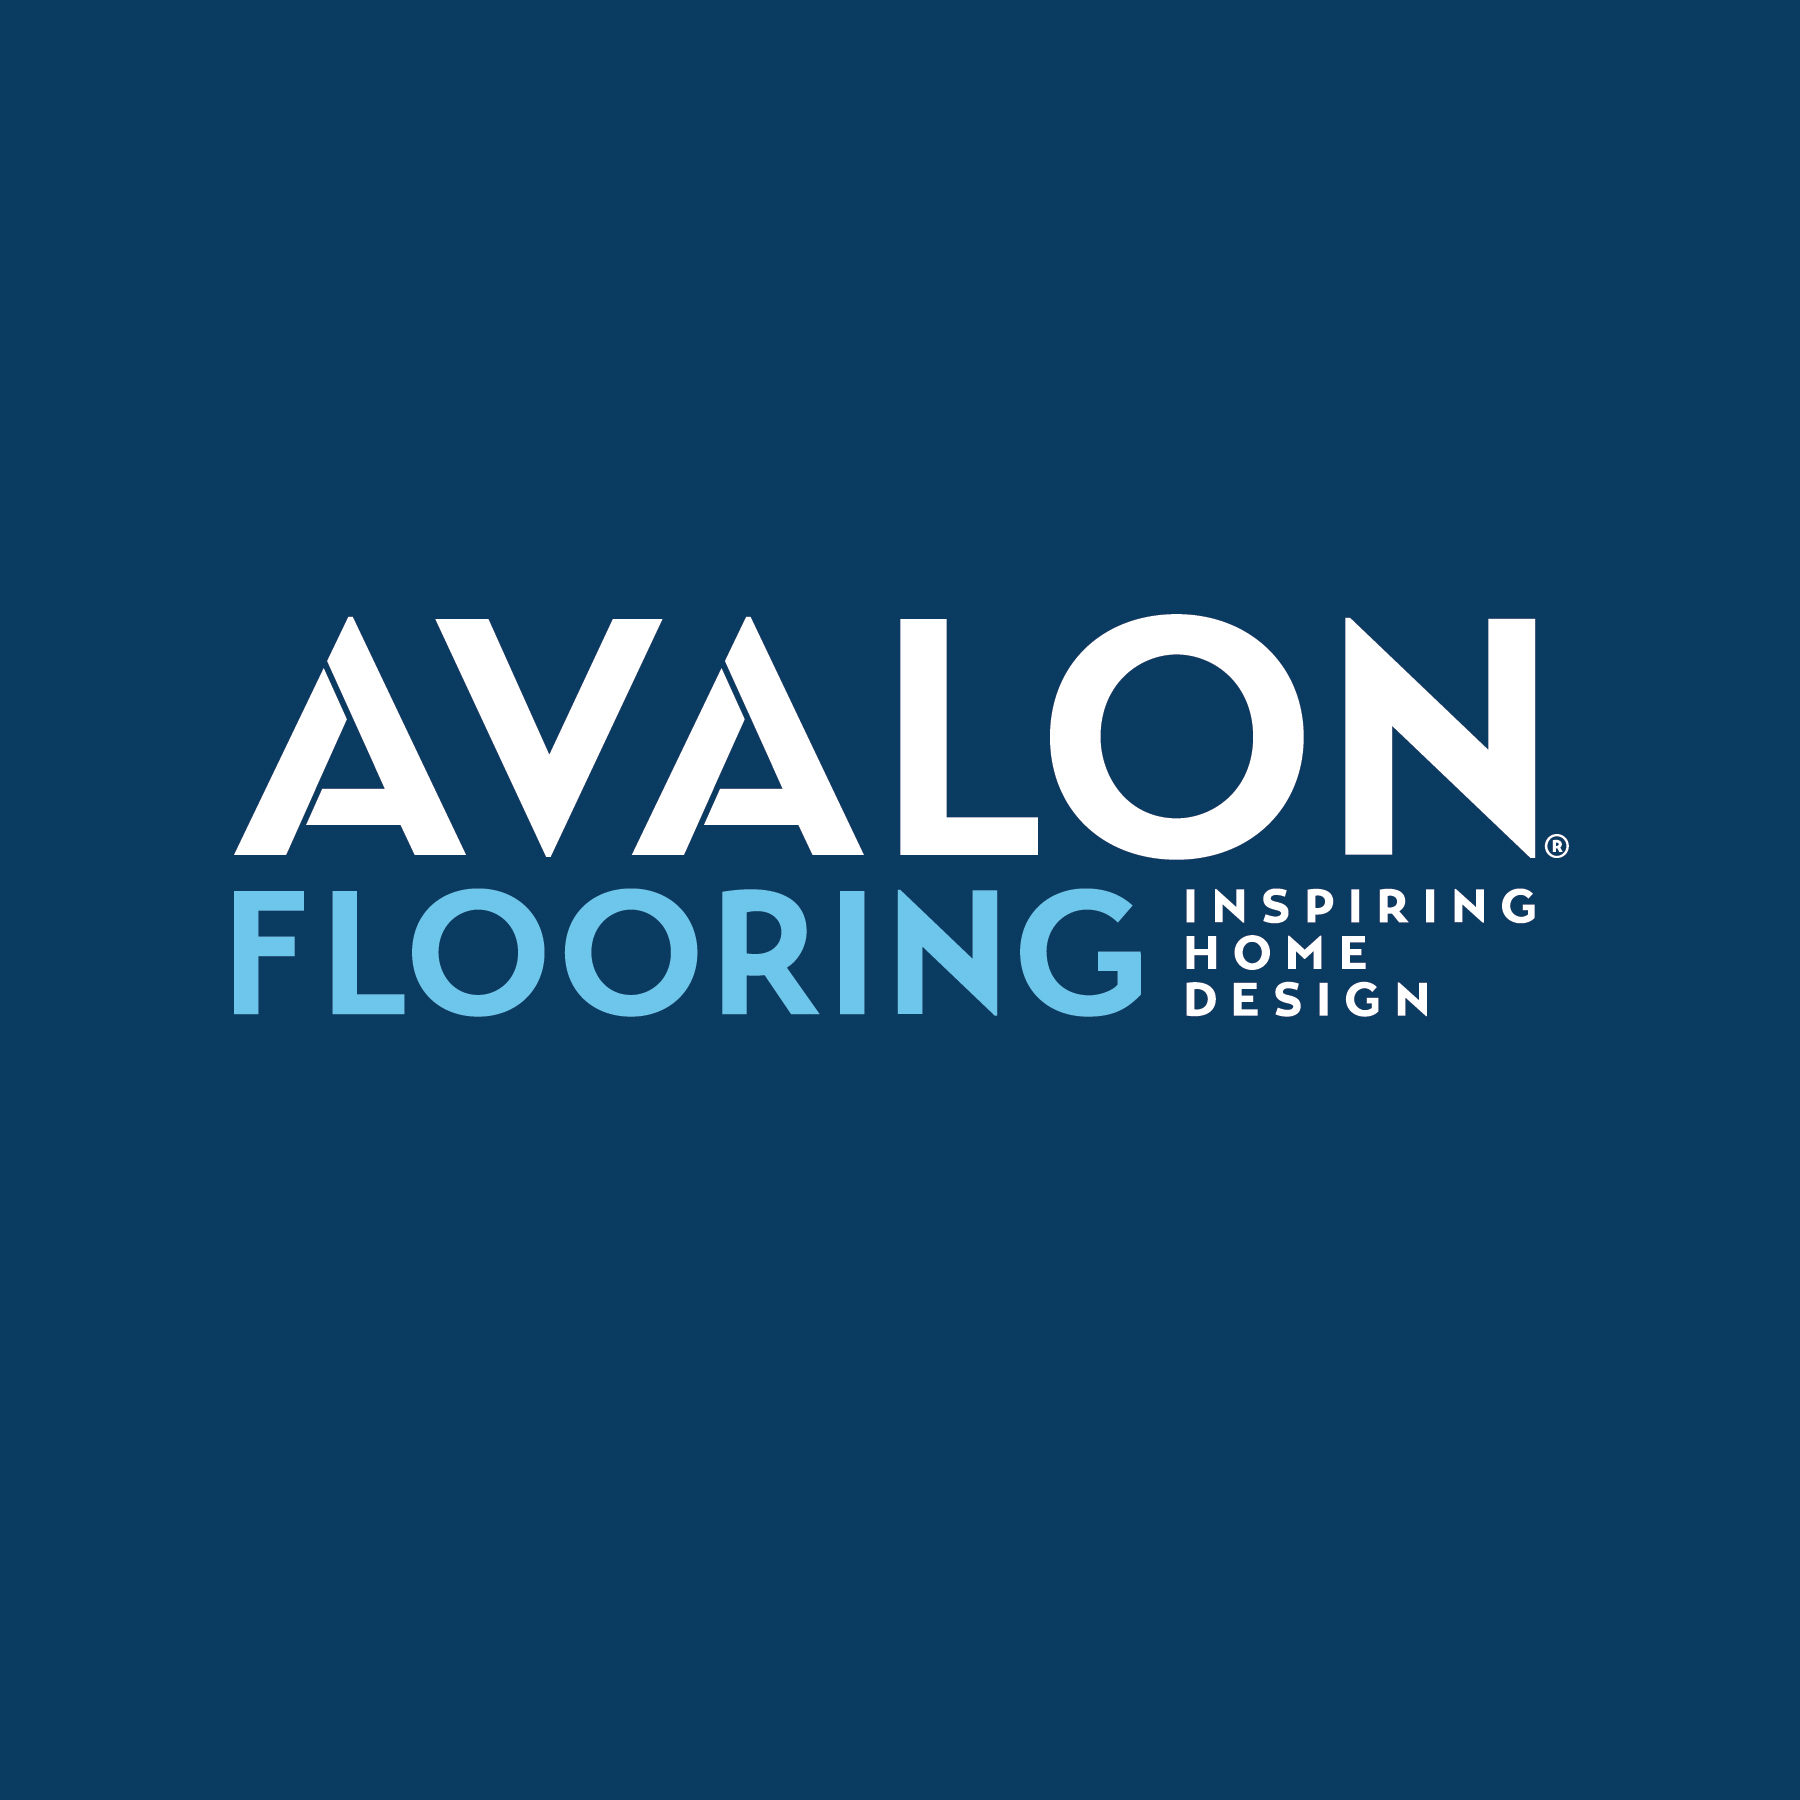 Avalon Flooring Locations - Alyssamyers